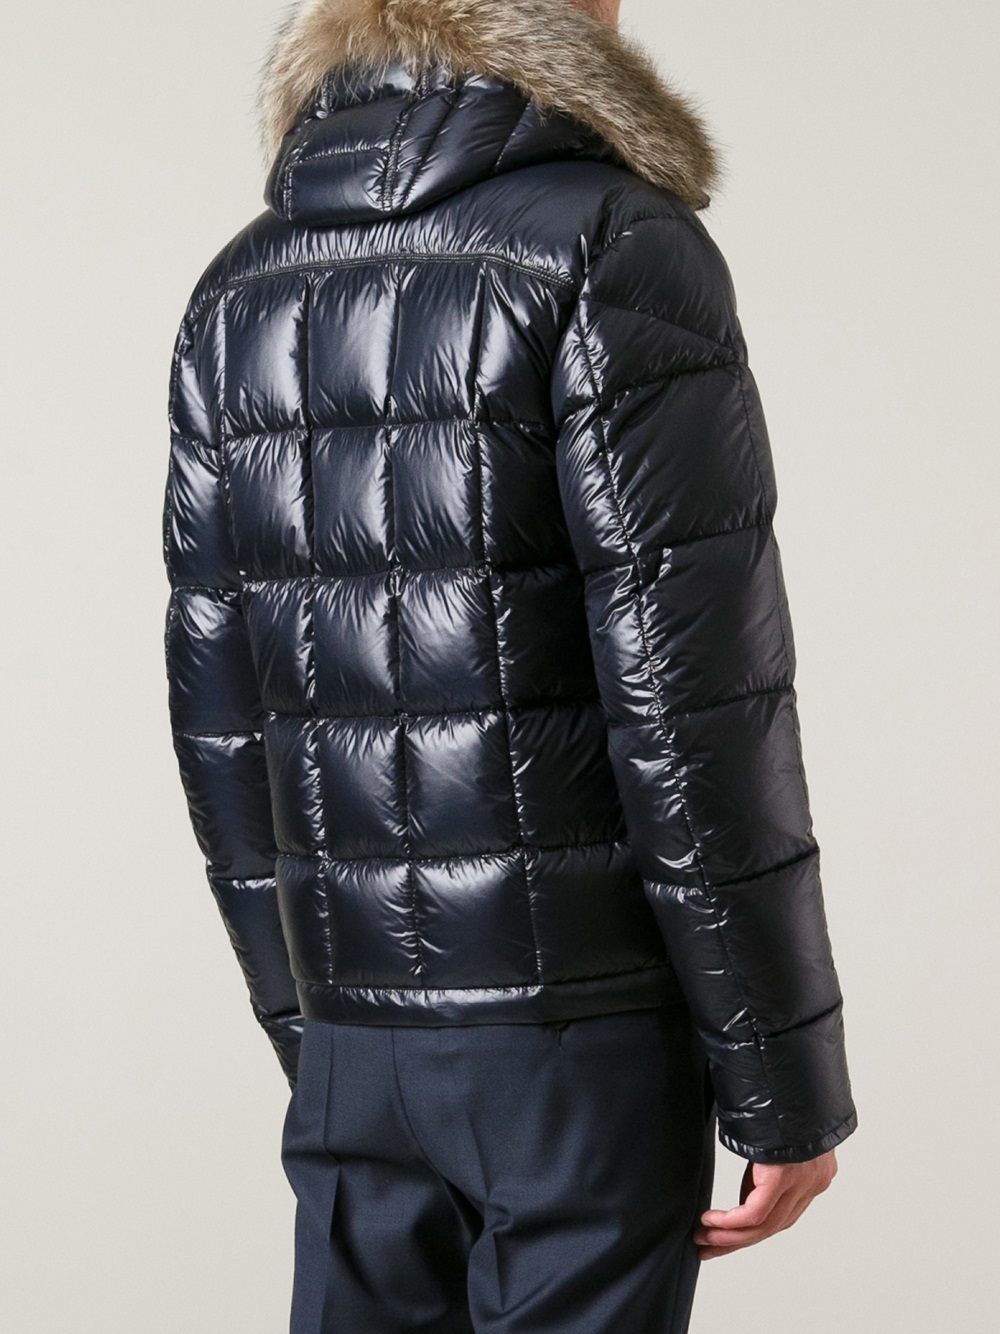 Moncler Bussang Textured Hooded Jacket In Blue For Men Lyst